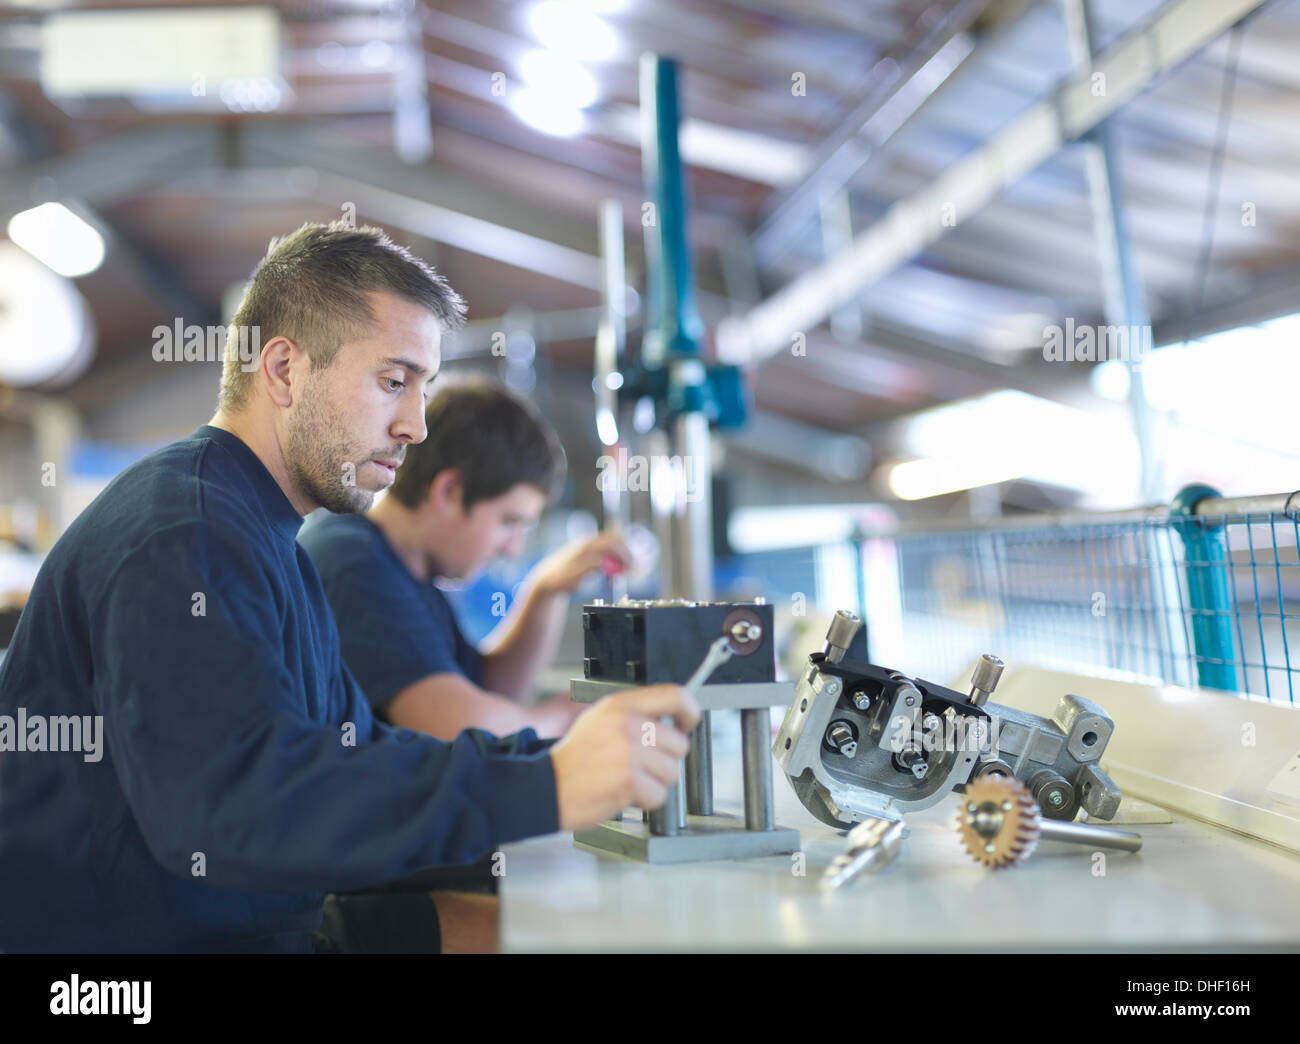 Engineer working on production line in factory Stock Photo